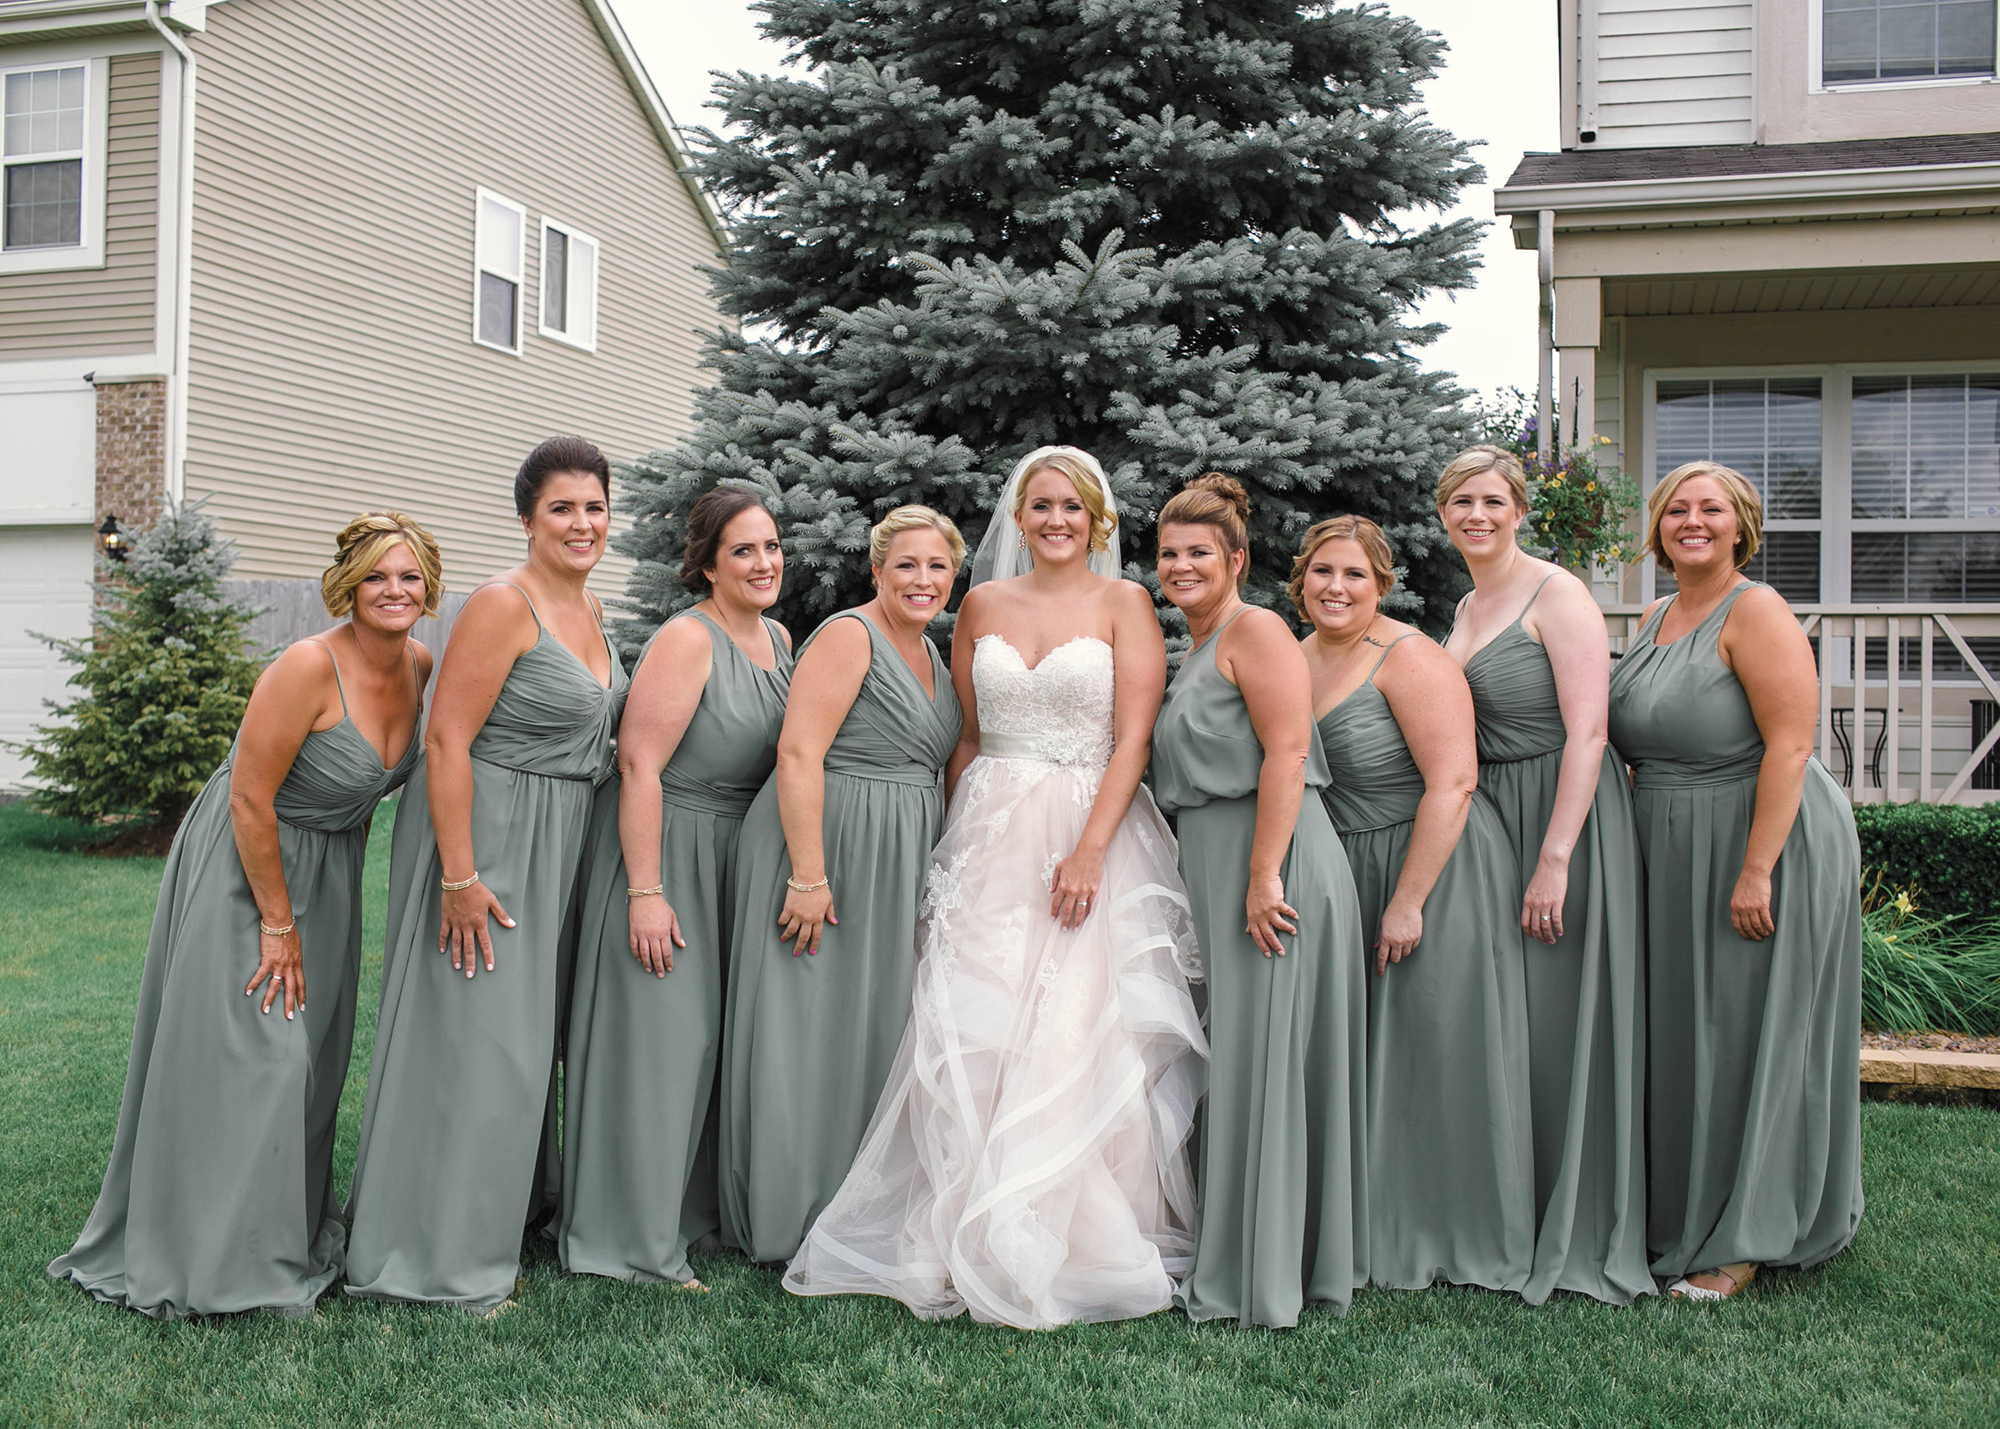 Green Bridesmaid Gowns Chicago Wedding Michelle Cox Photography